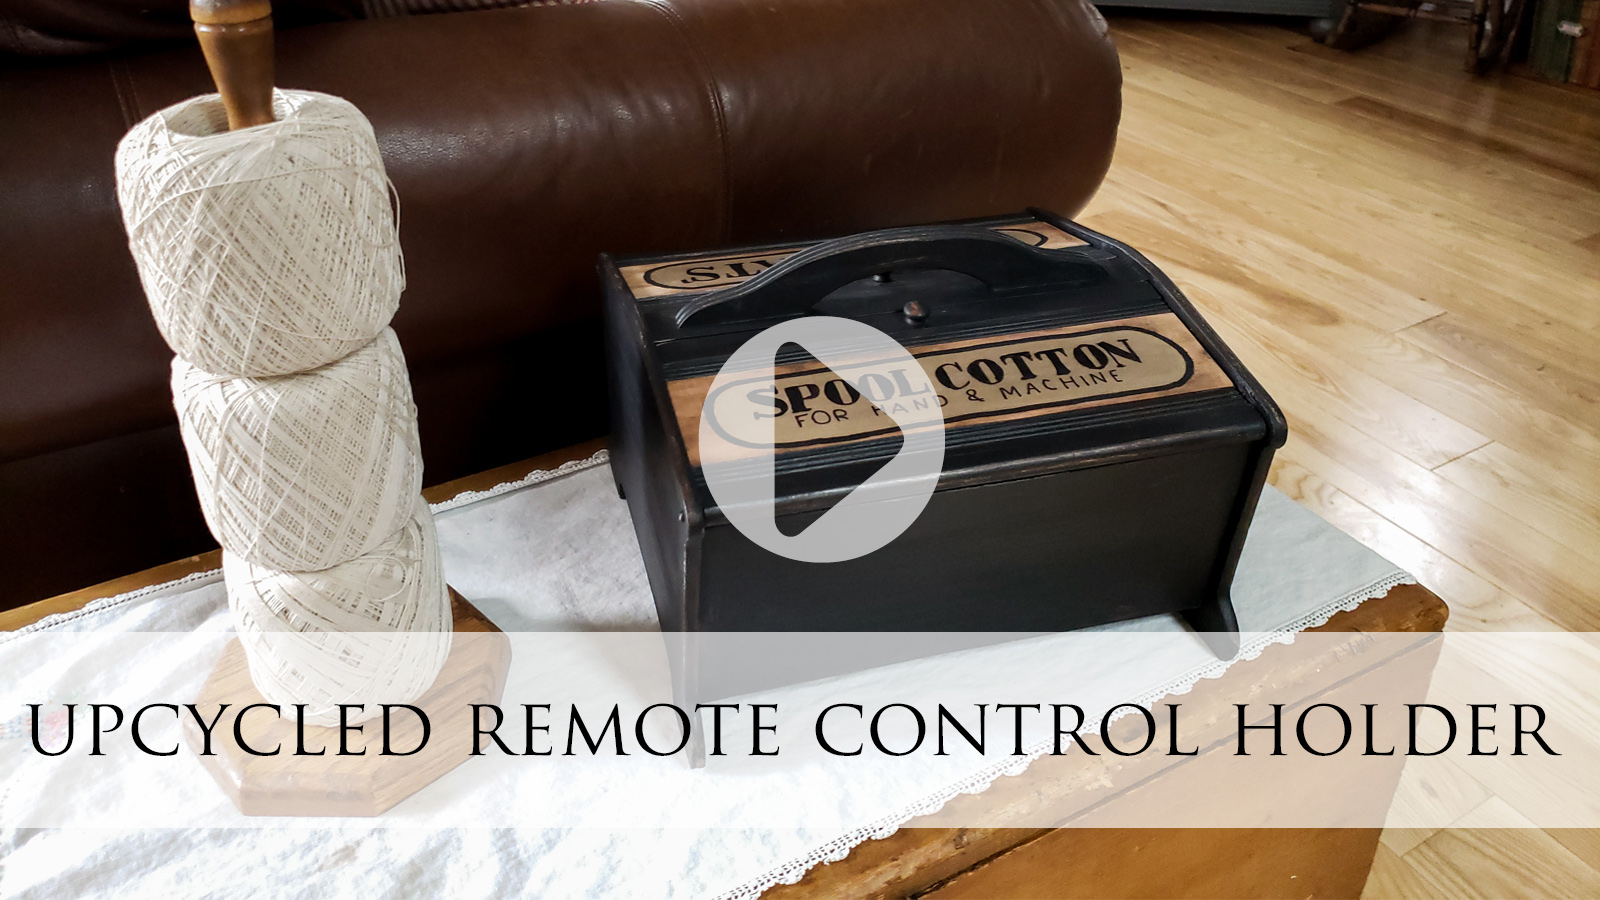 Upcycled Remote Control Holder from Sewing Box by Larissa of Prodigal Pieces | prodigalpieces.com